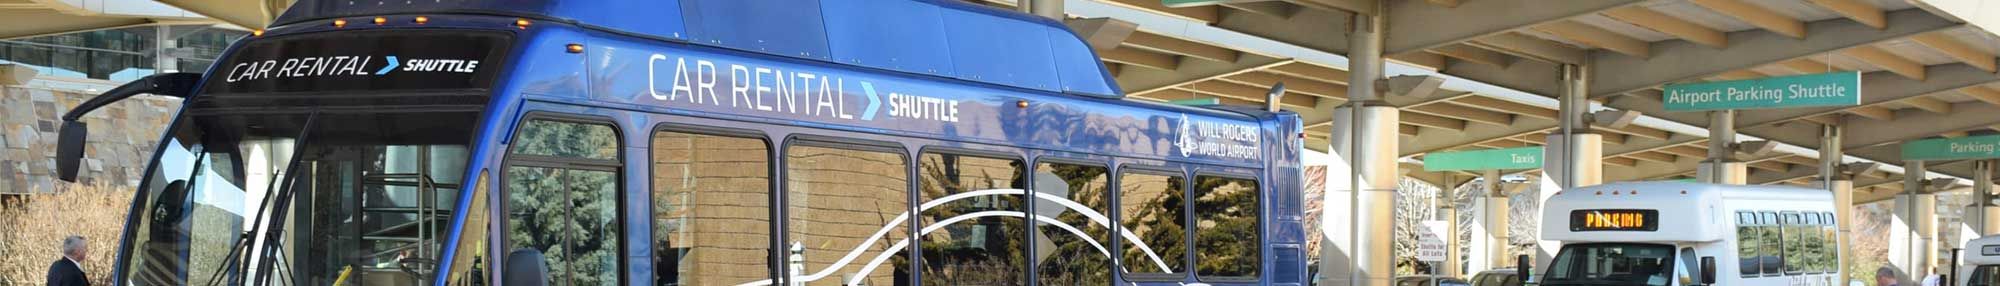 OKC Airport Car Rental Shuttle